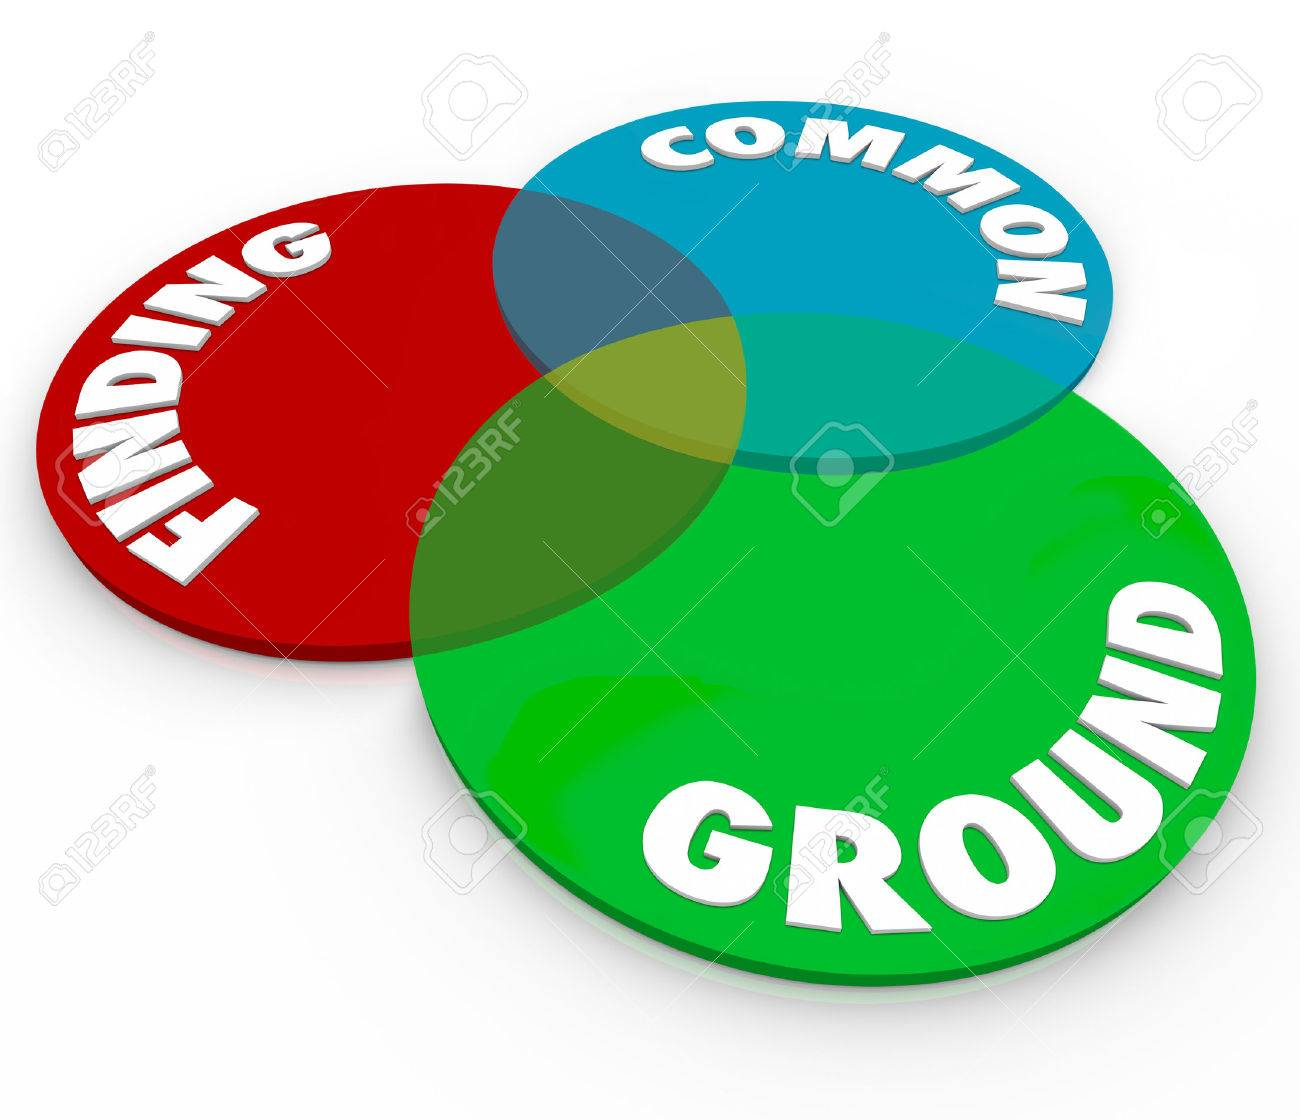 Finding common ground venn diagram of 3 overlapping circles finding common ground venn diagram of 3 overlapping circles illustrating shared interests or mutual benefits stock pooptronica